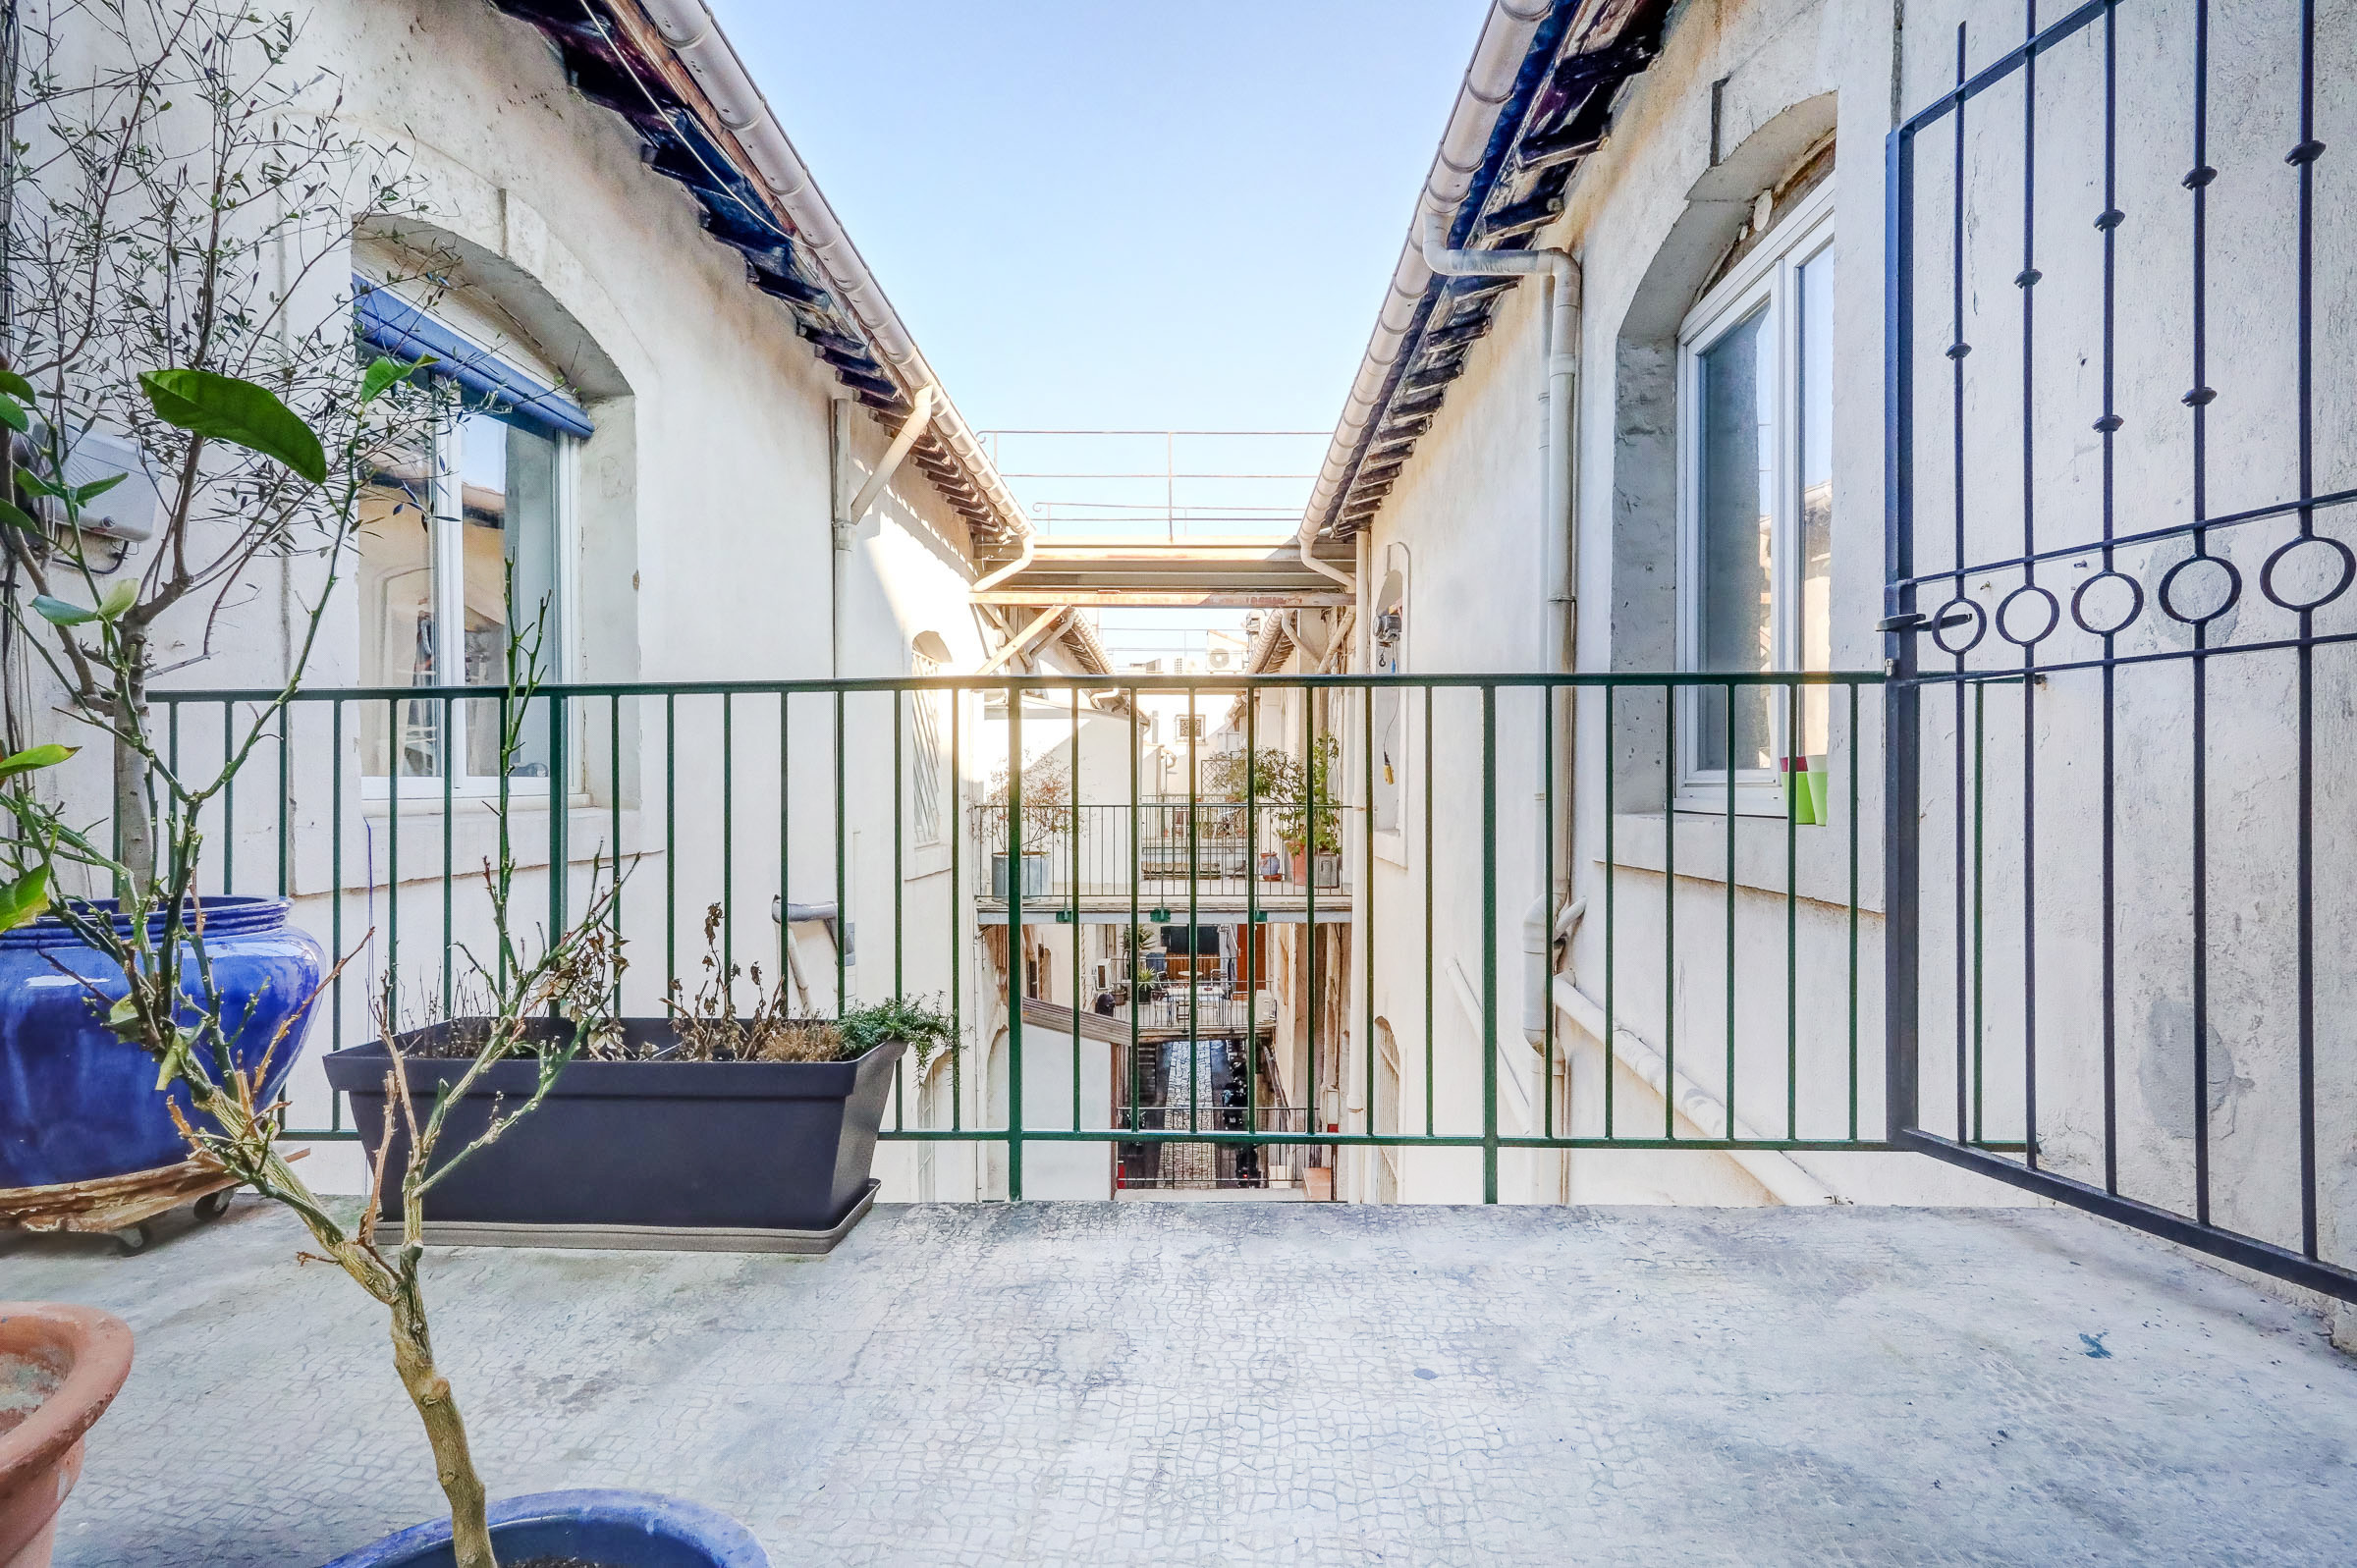 Ma terrasse marseille agence immobili re acheter for Acheter une maison sans agence immobiliere